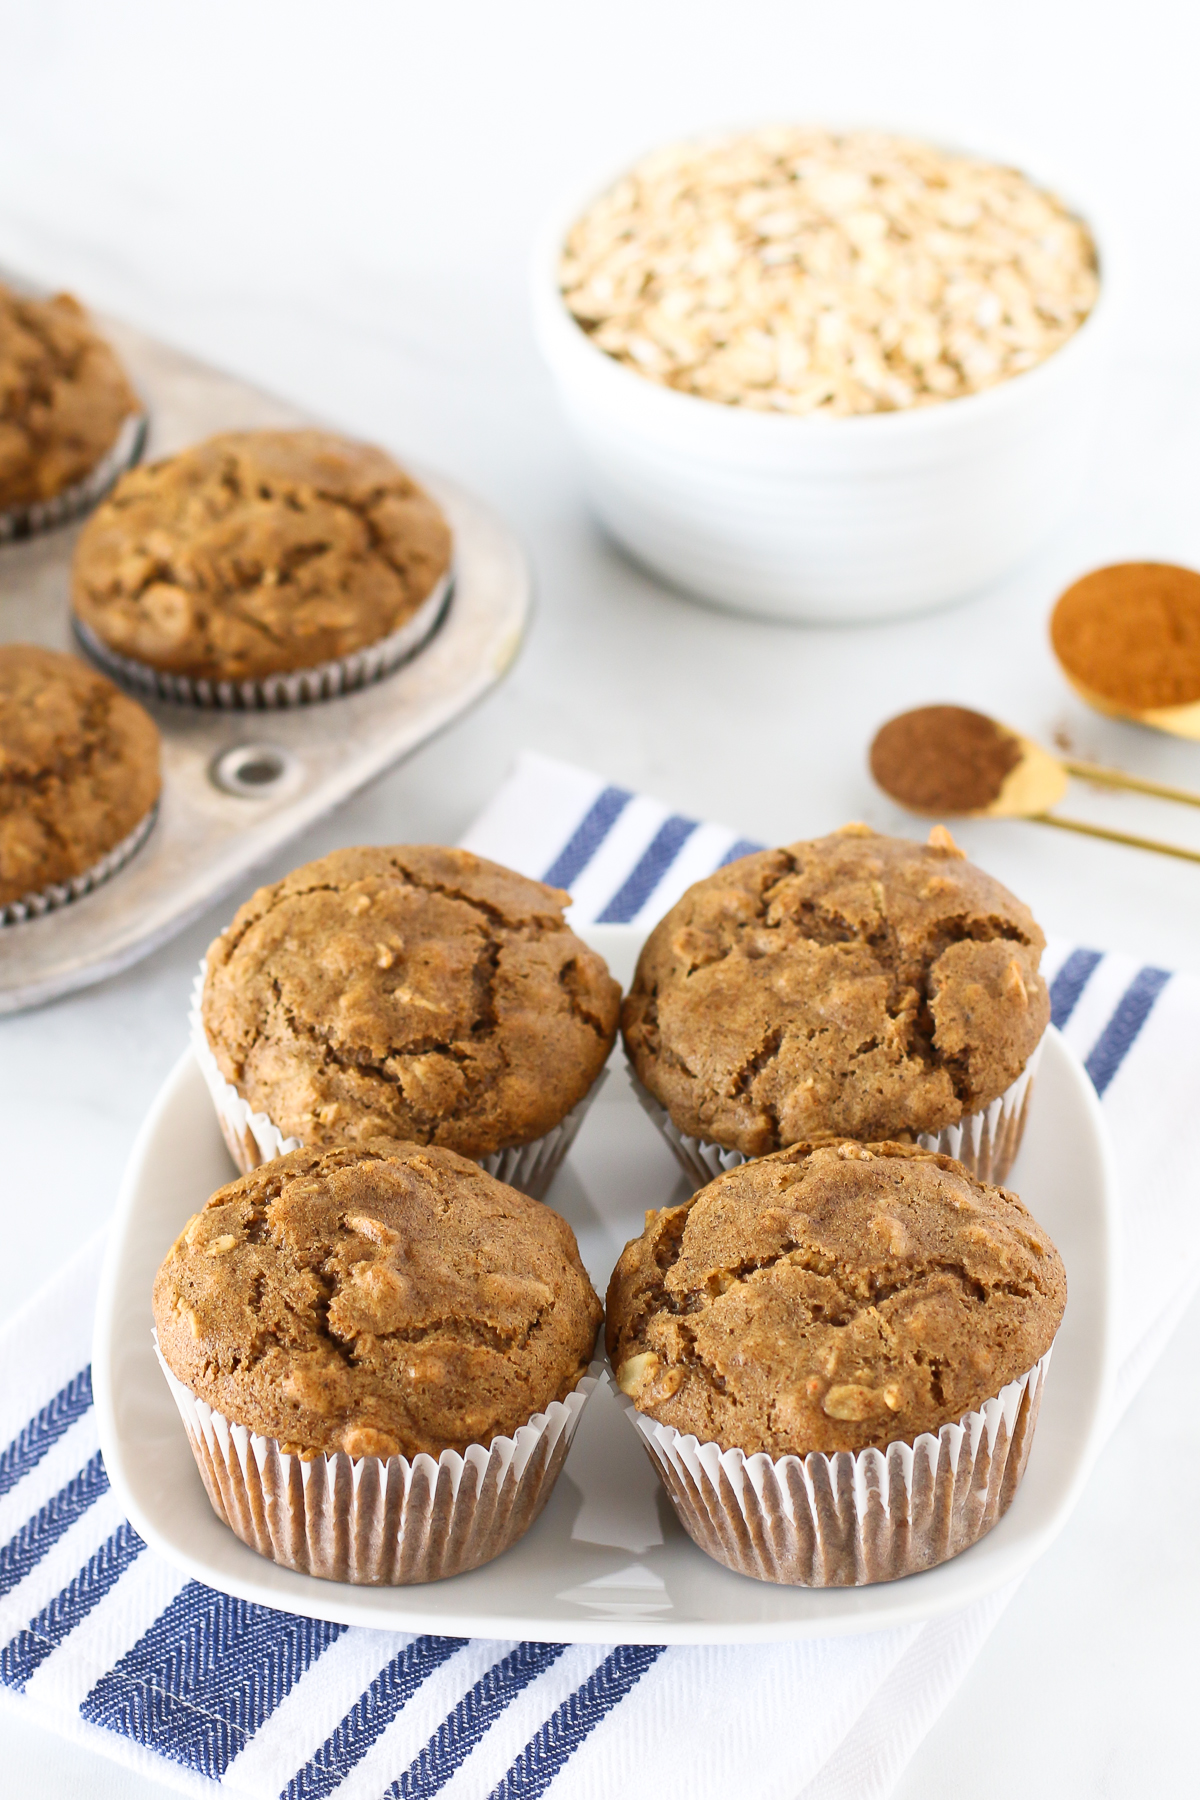 Gluten Free Vegan Oatmeal Spice Muffins. These tender muffins are filled with oats and warm spices, making them a lovely morning treat.